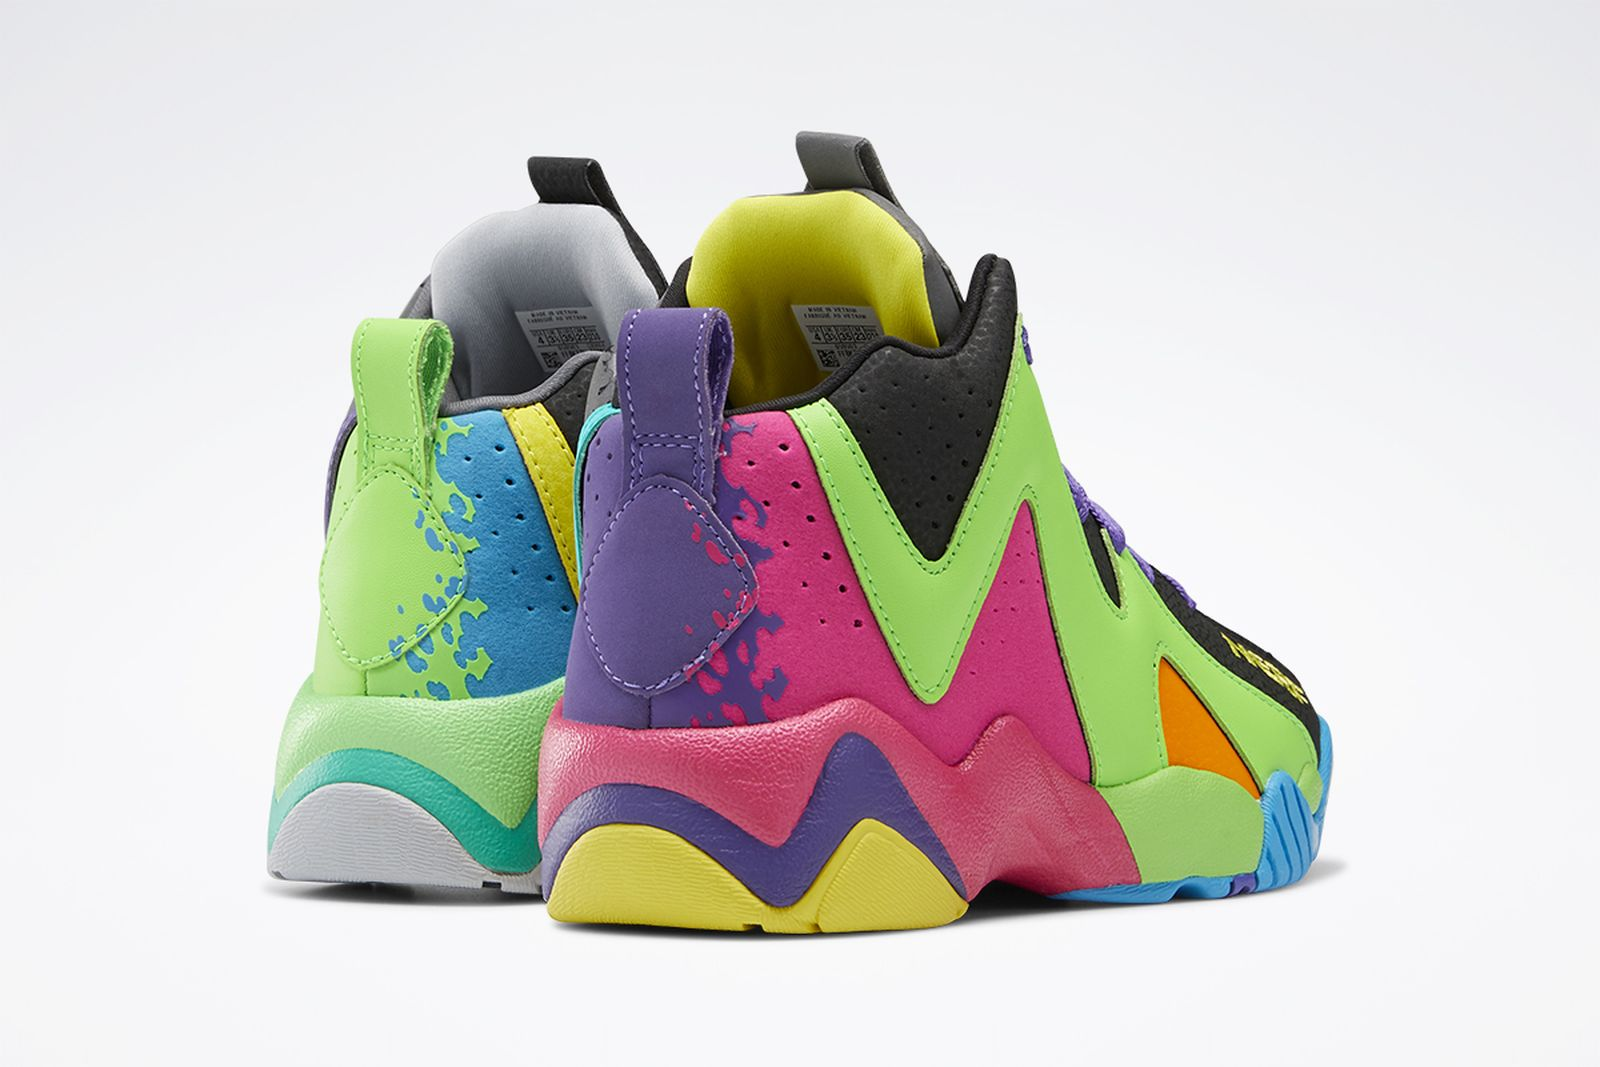 nerf-reebok-retro-basketball-collection-release-date-price-06